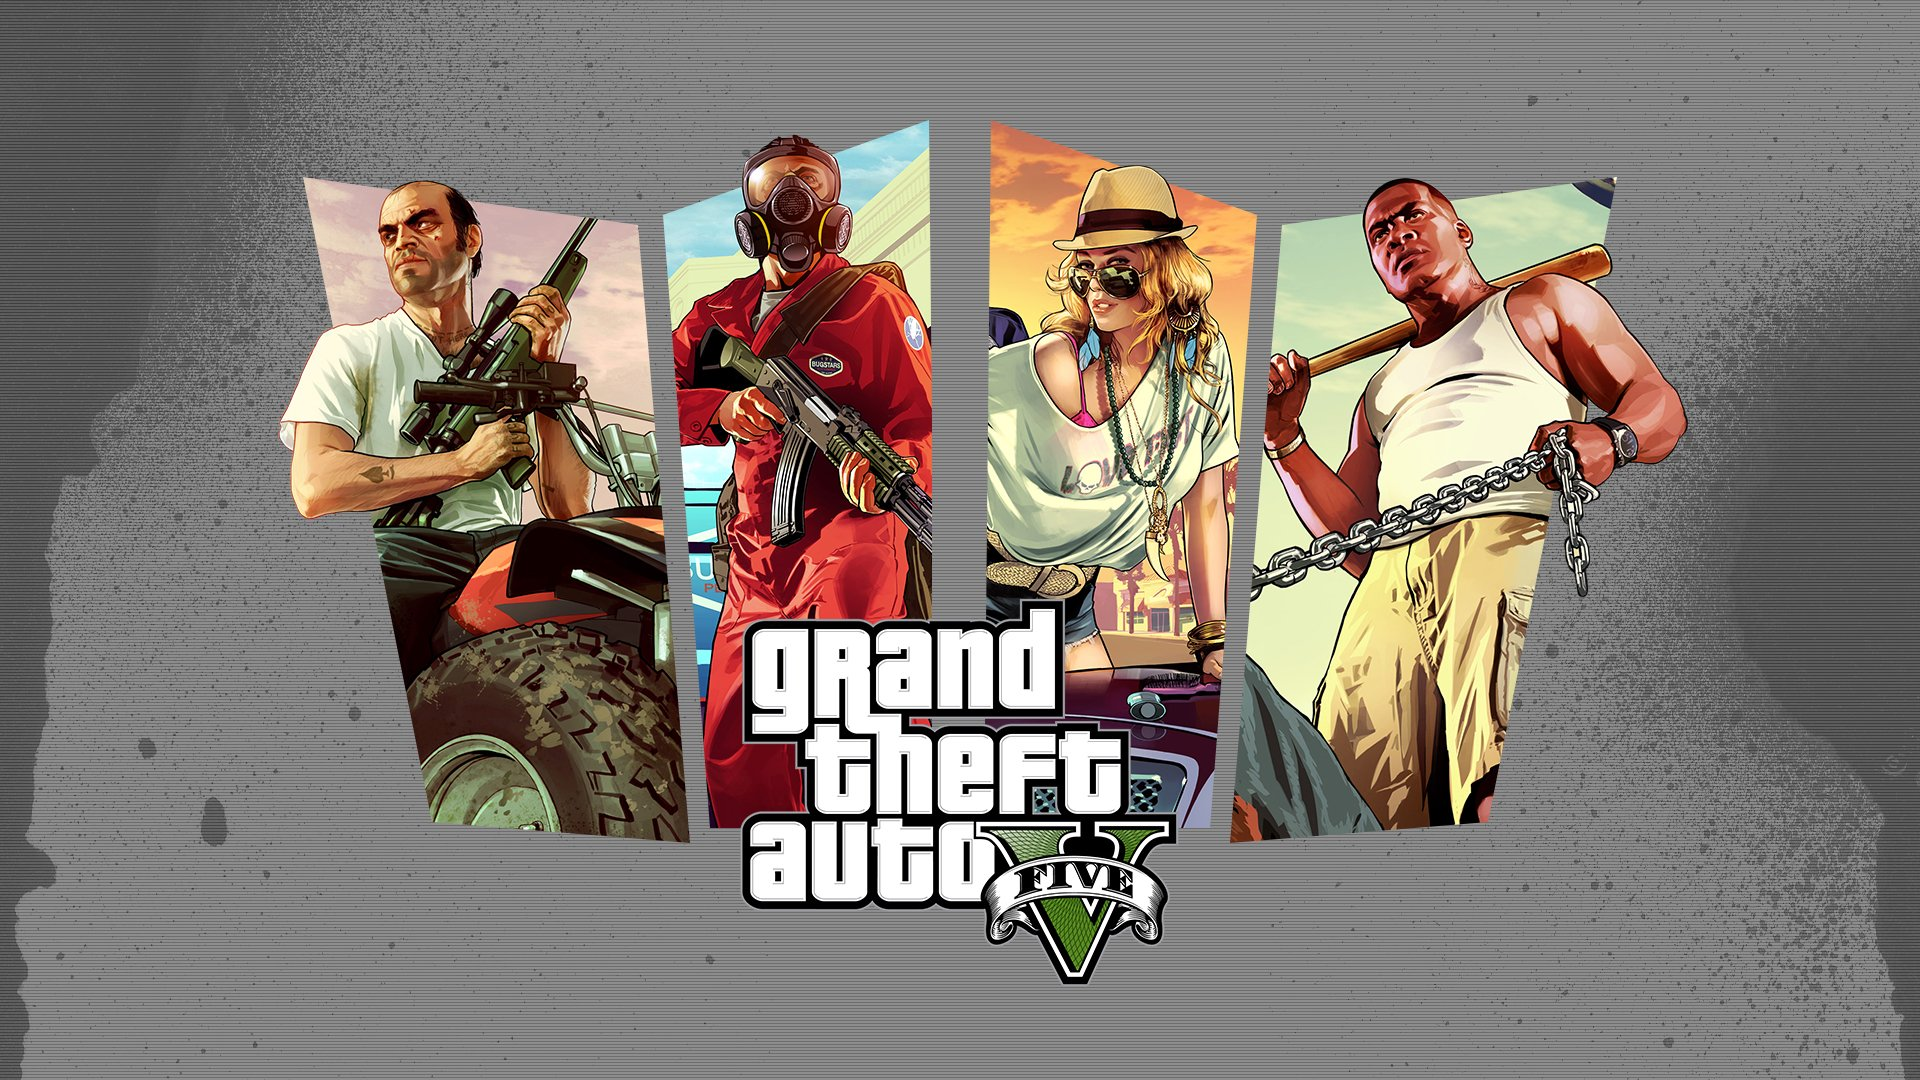 Grand Theft Auto V 2013 Wallpaper 1920x1080 by CREEPnCRAWL on 1920x1080